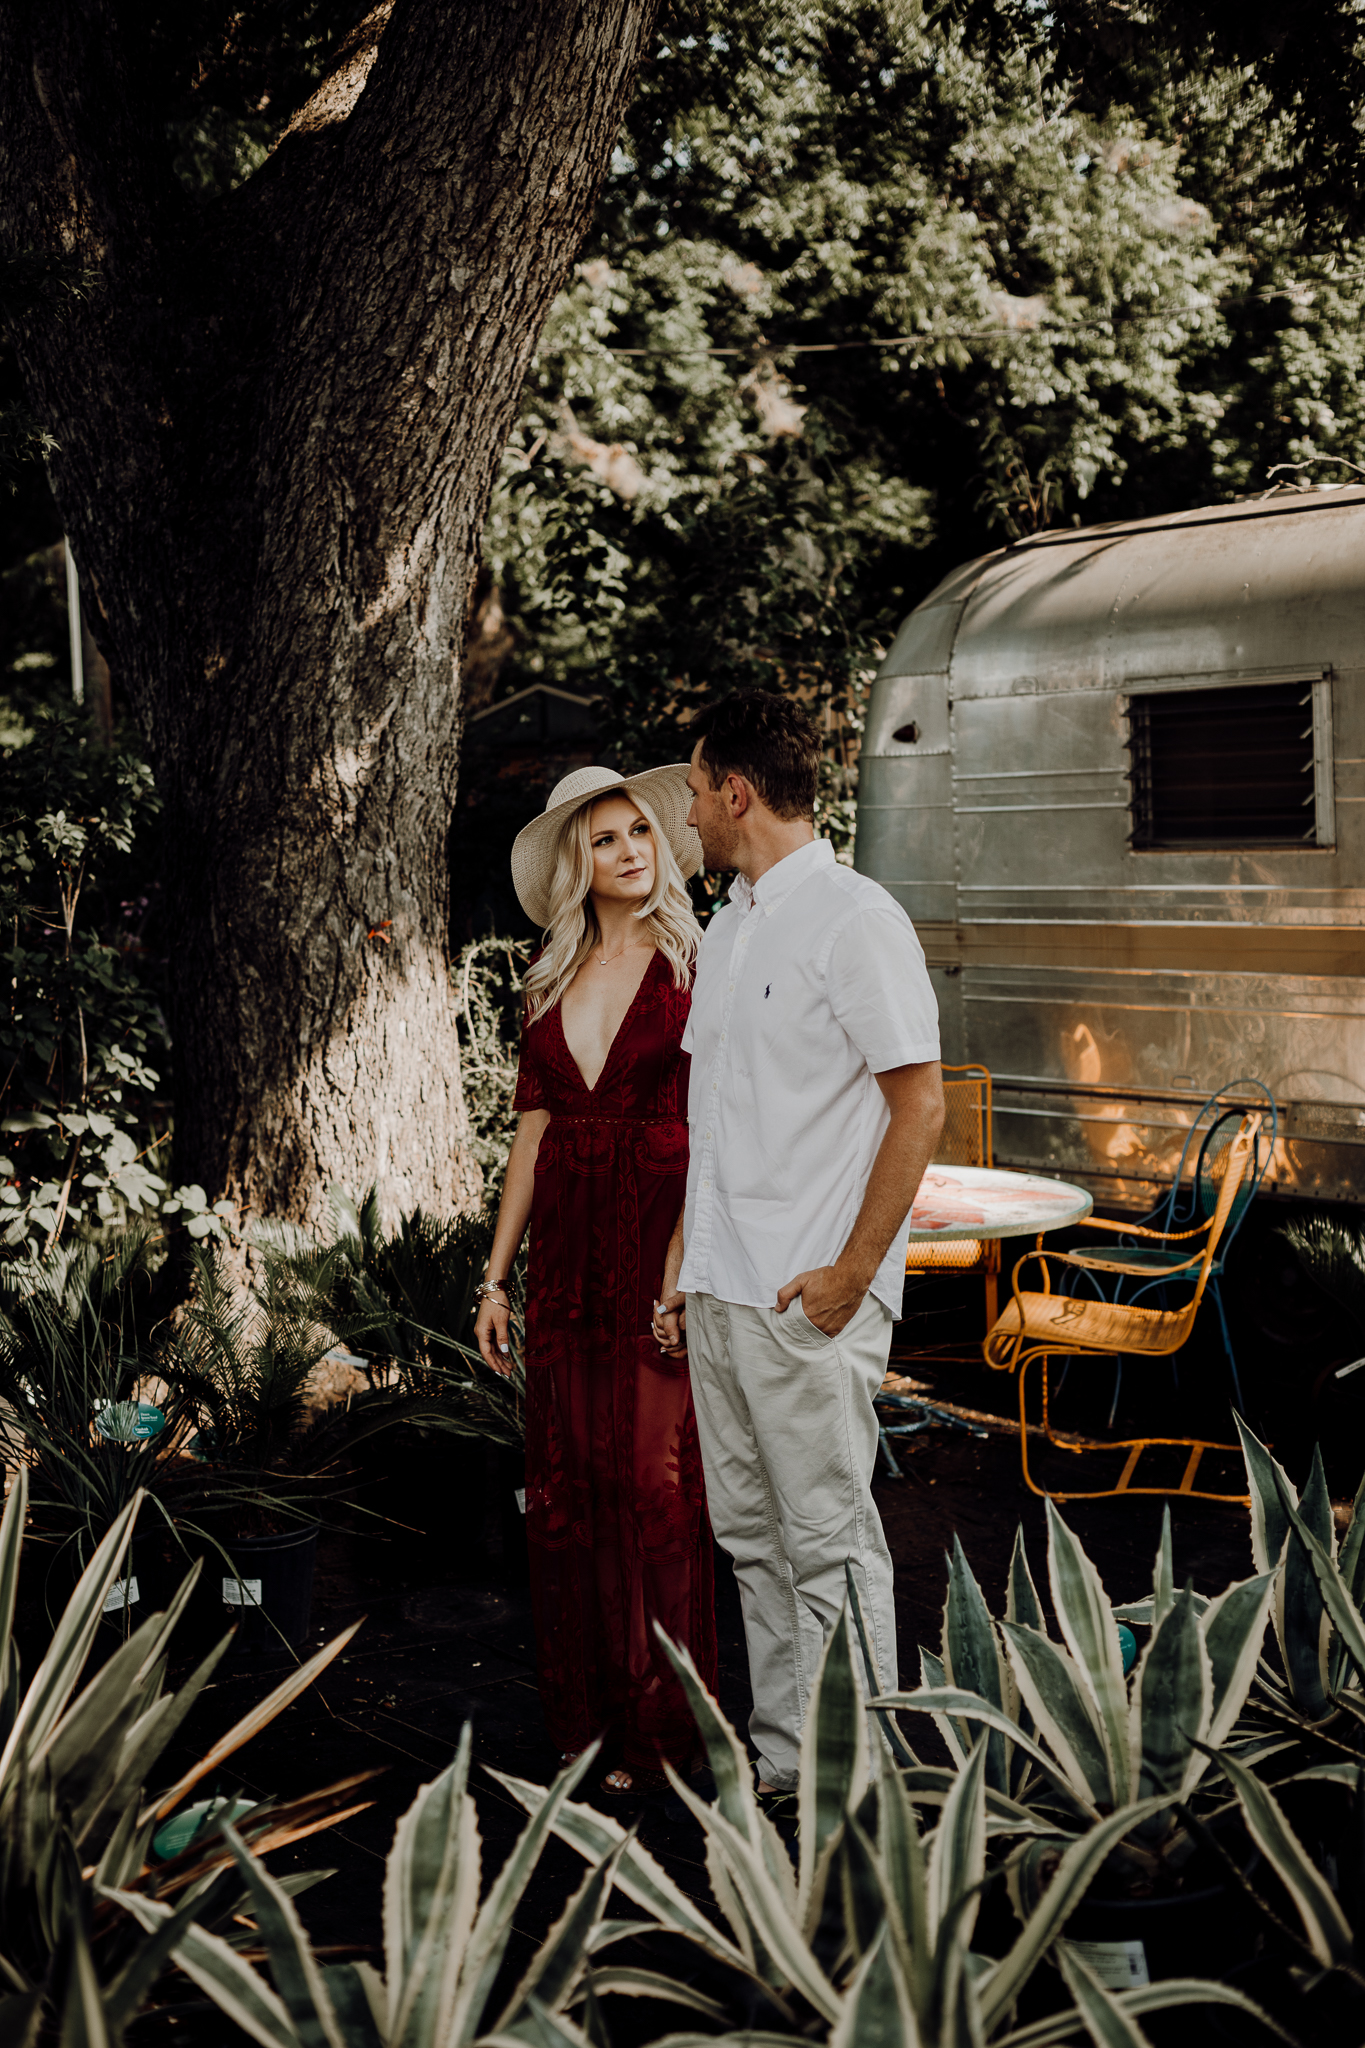 kristen giles photography | texas wedding photographer - austin plant shop engagement session-9-blog.jpg